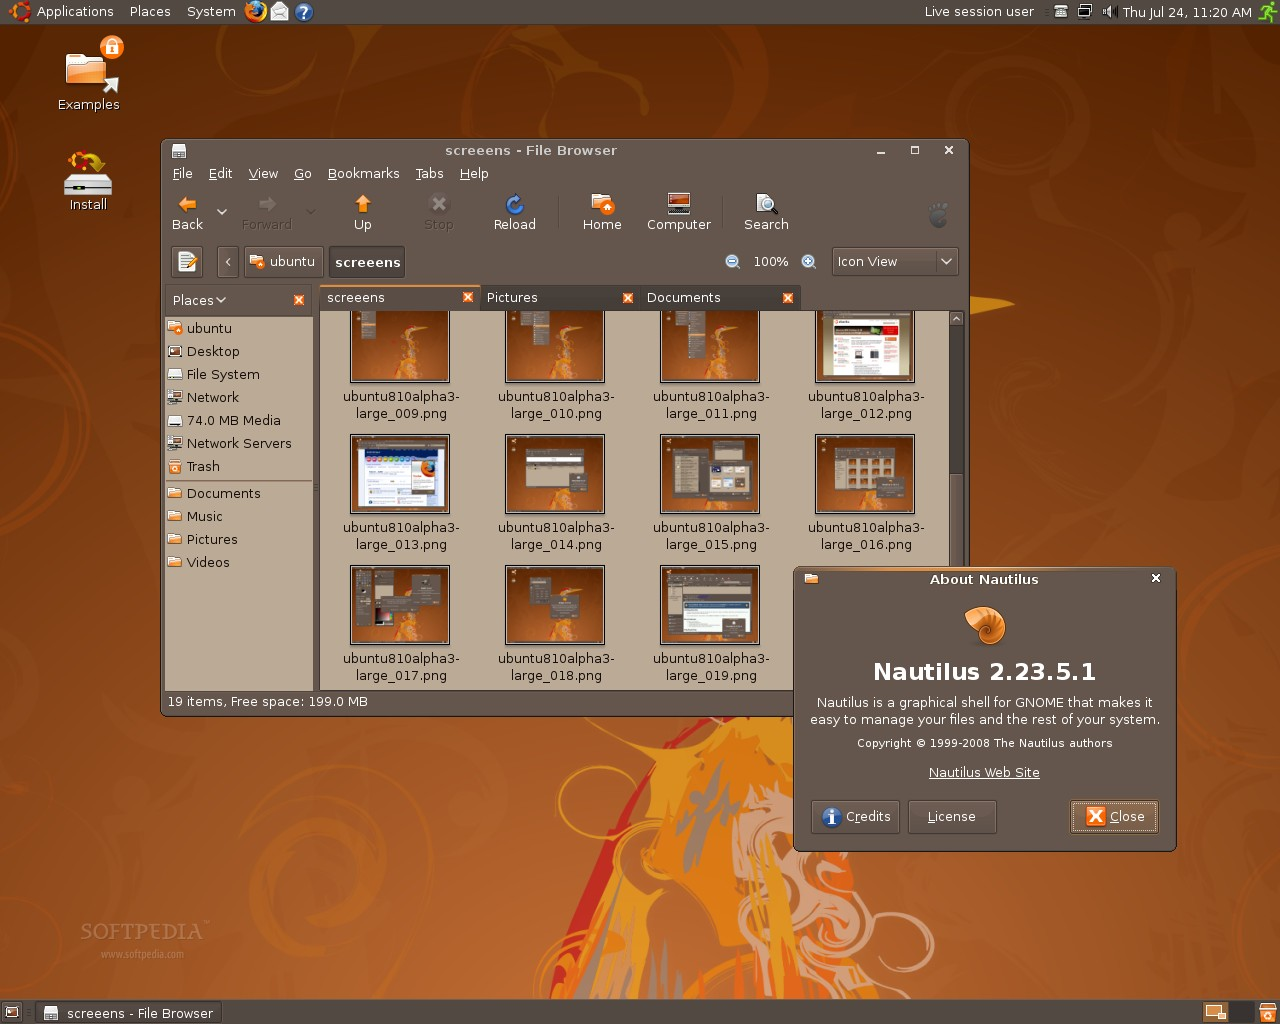 ubuntu810alpha3-large_016.jpg